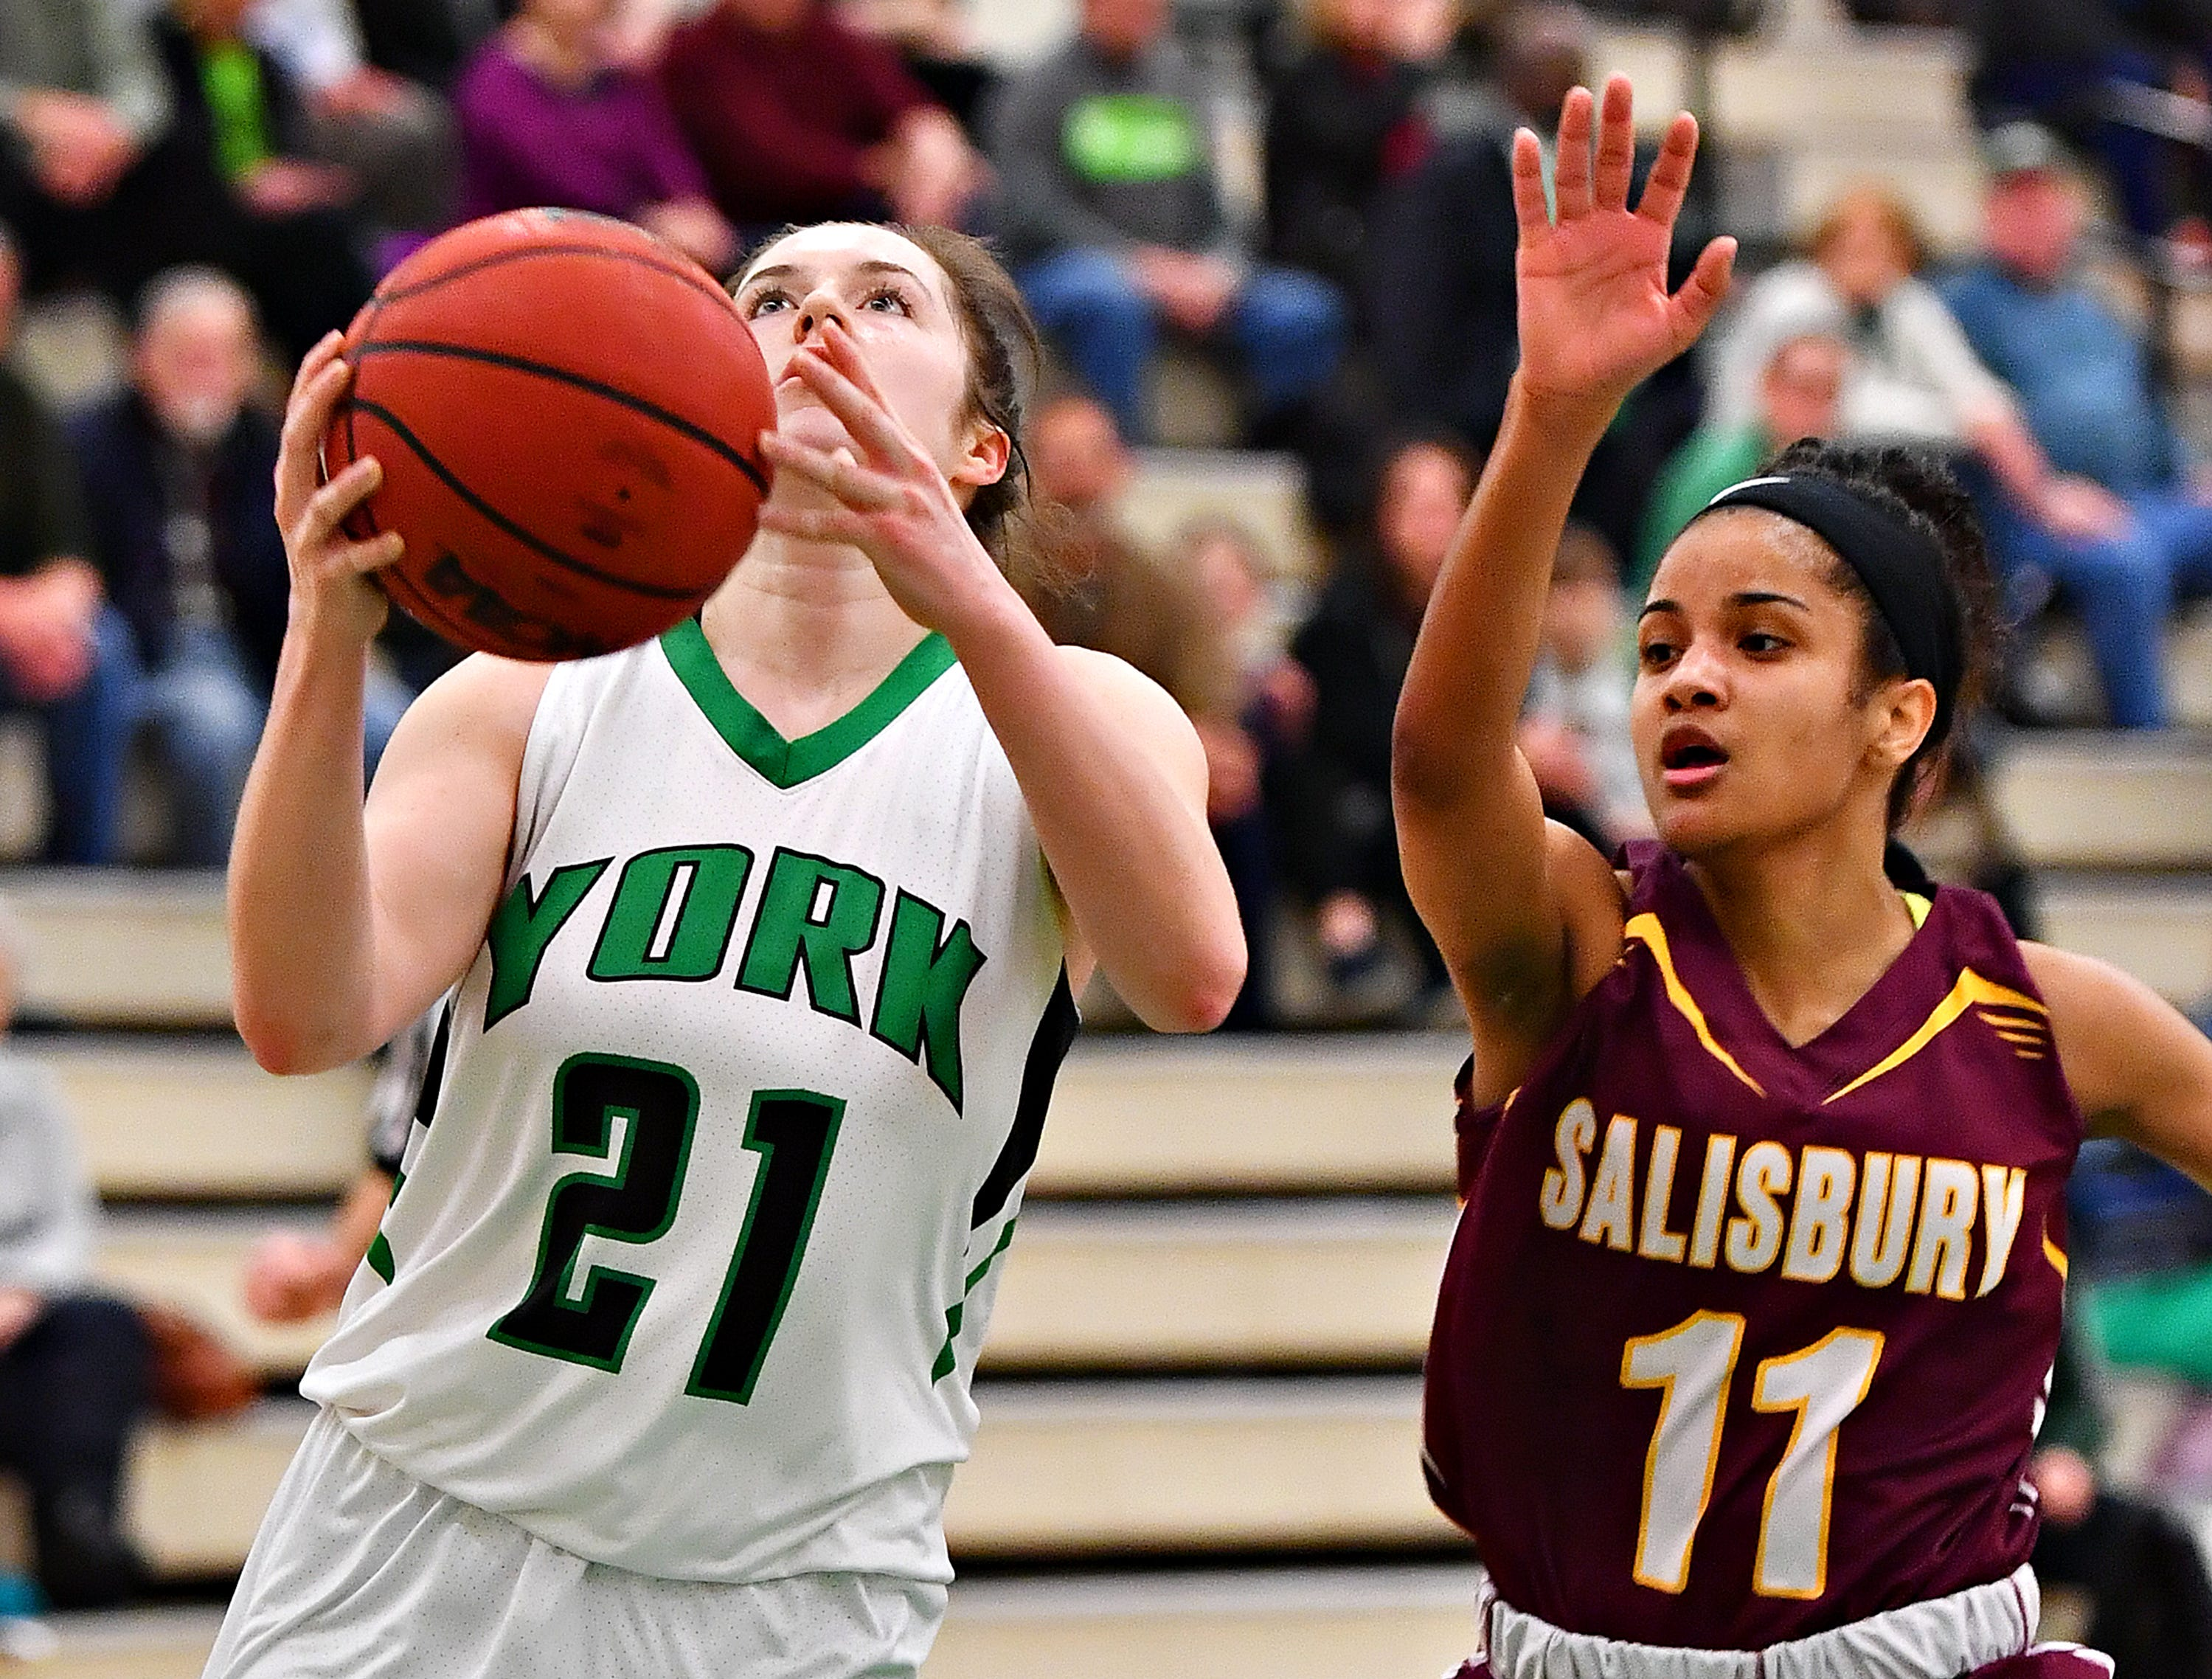 York College's Kayla Ferris, left, takes the ball to the basket while Salisbury's Jada Welbon defends during women's basketball action at Grumbacher Sport and Fitness Center at York College of Pennsylvania in Spring Garden Township, Wednesday, Feb. 6, 2019. Dawn J. Sagert photo